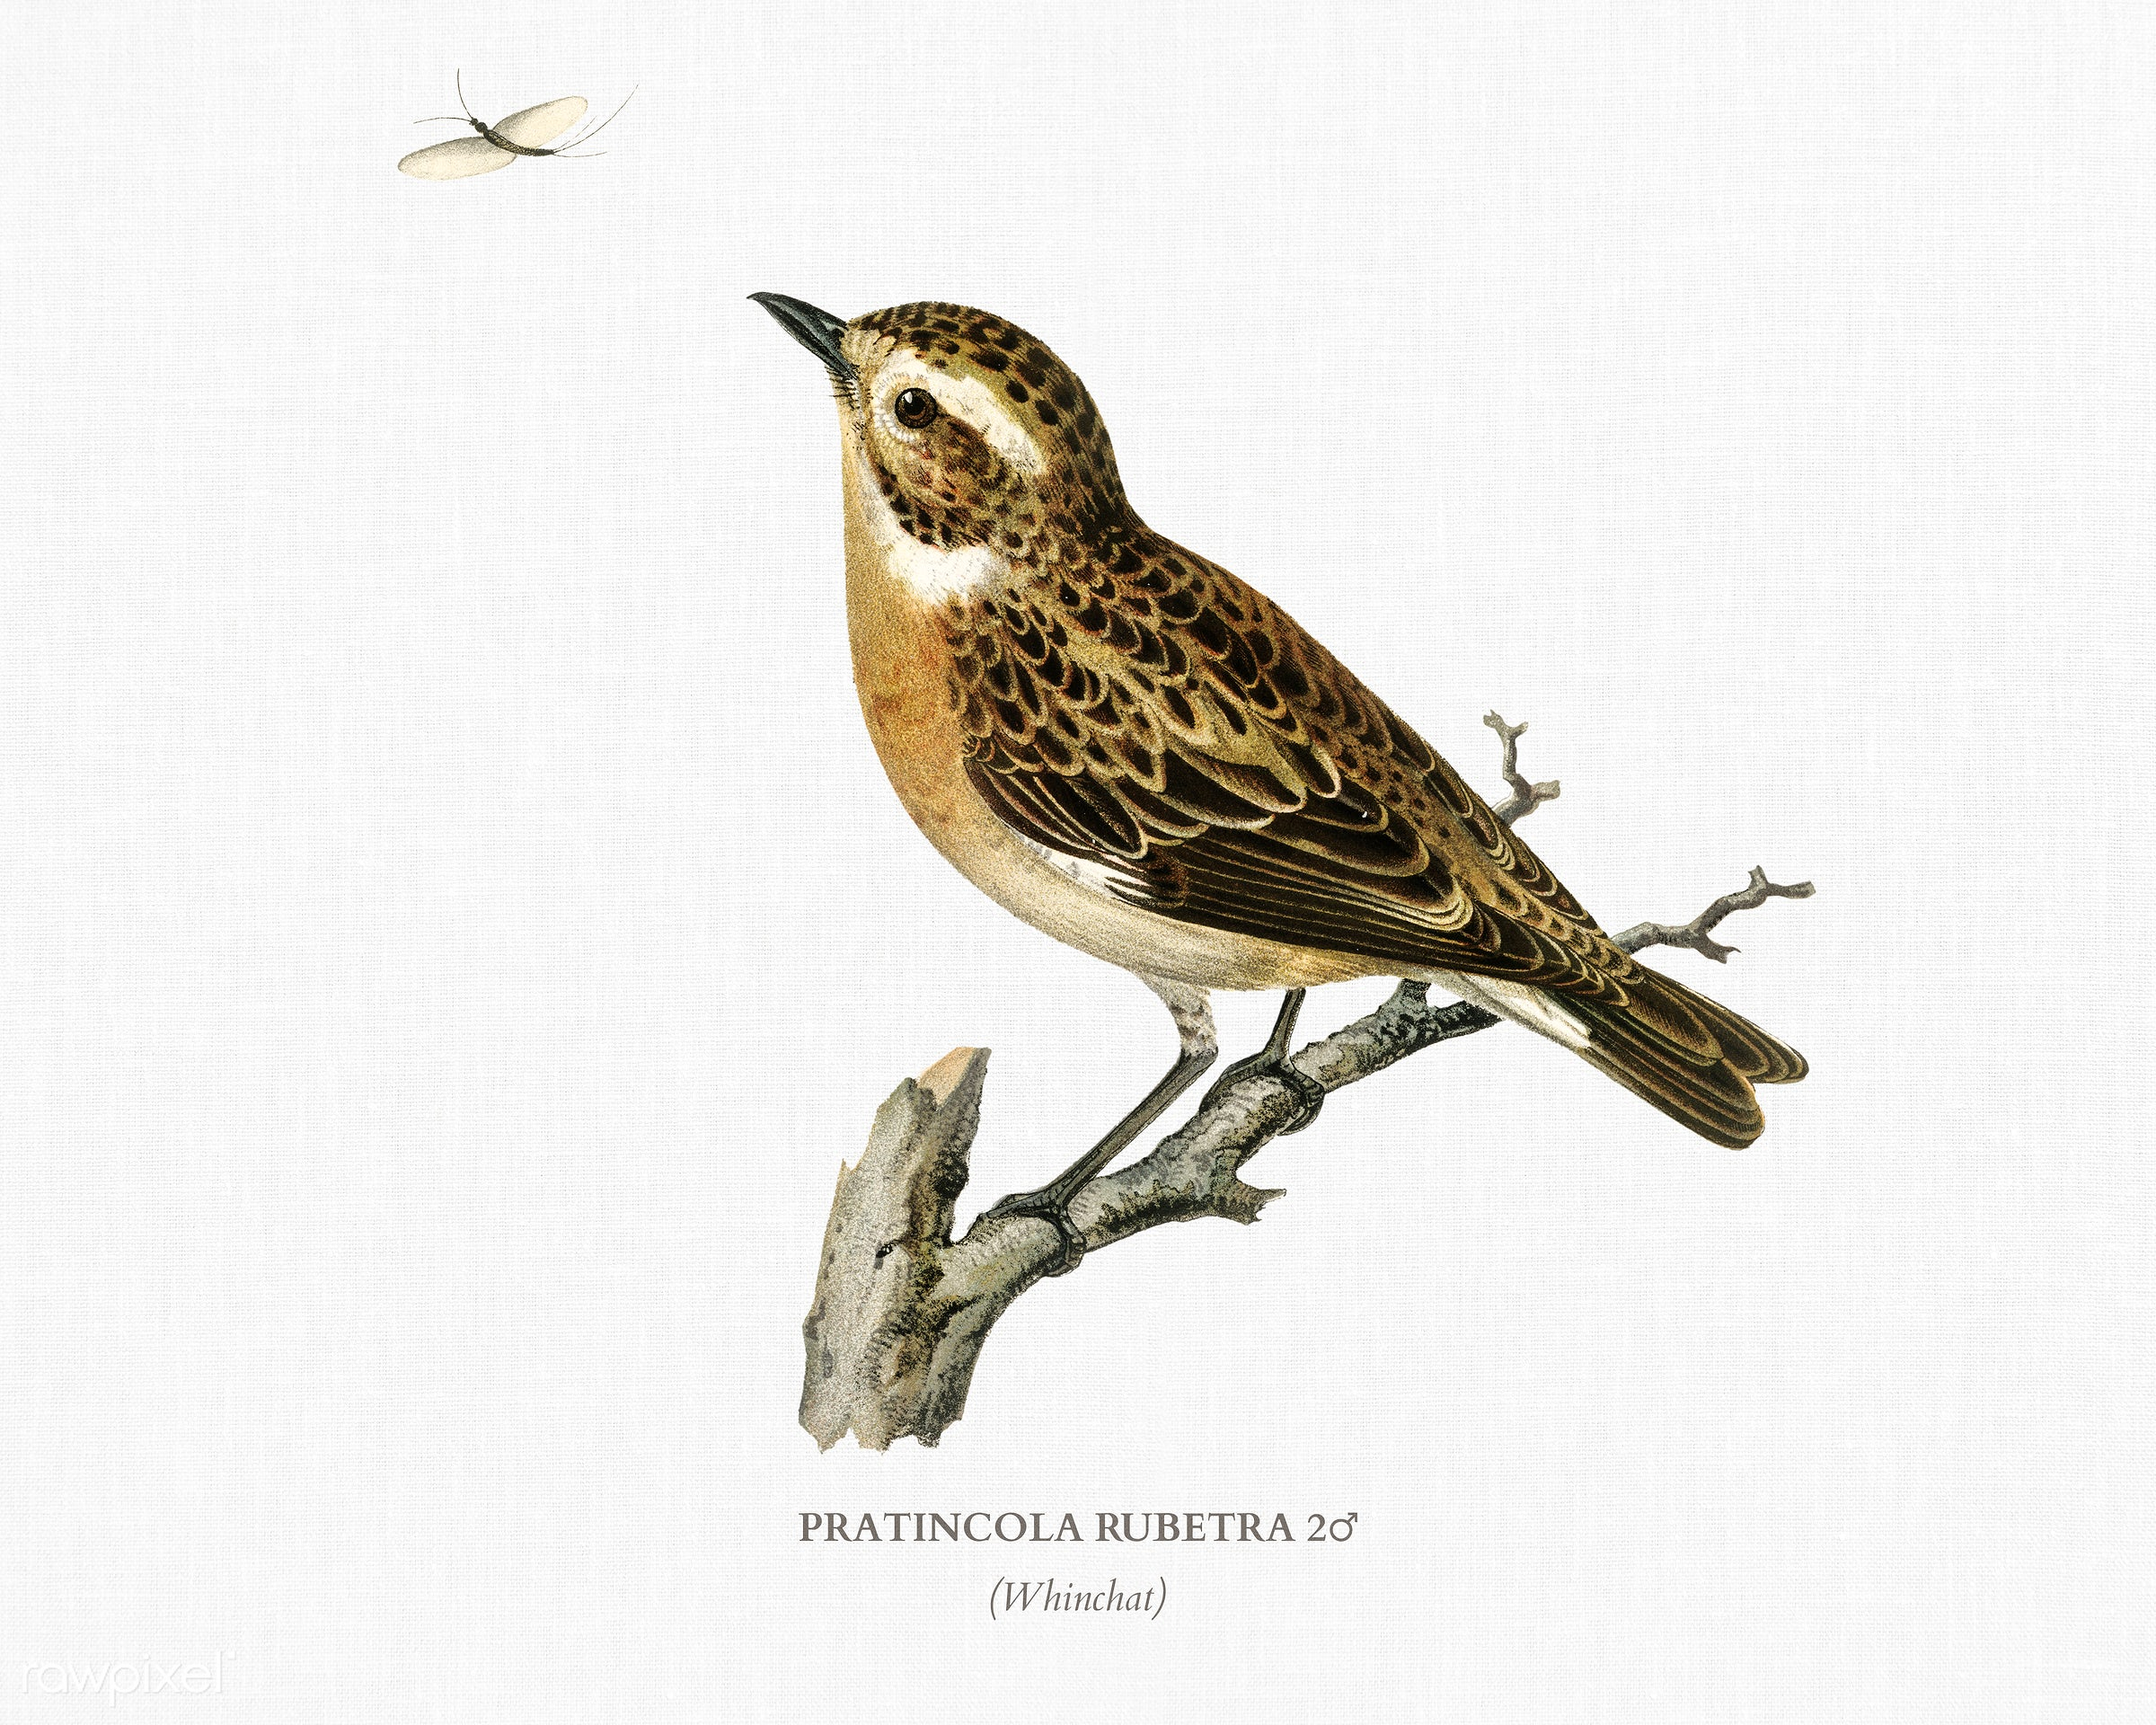 Whinchat 2♂ (Pratincola rubetra) illustrated by the von Wright brothers. Digitally enhanced from our own 1929 folio version...